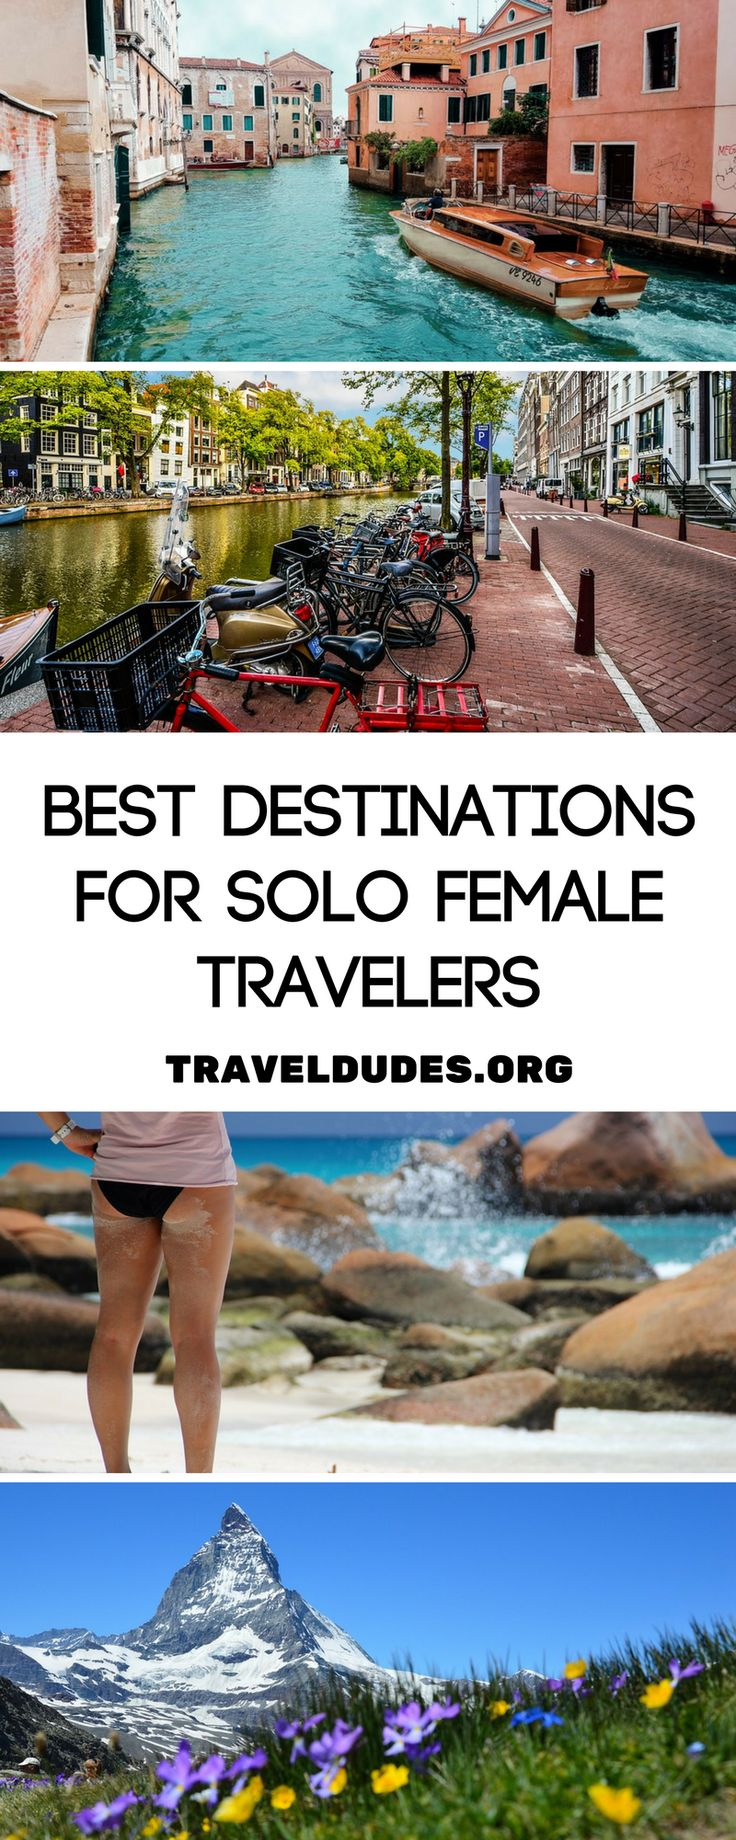 10 of the safest destinations for solo female travelers. Solo female travel tips. | Blog by Travel Dudes: Community for Travelers, by Travelers!